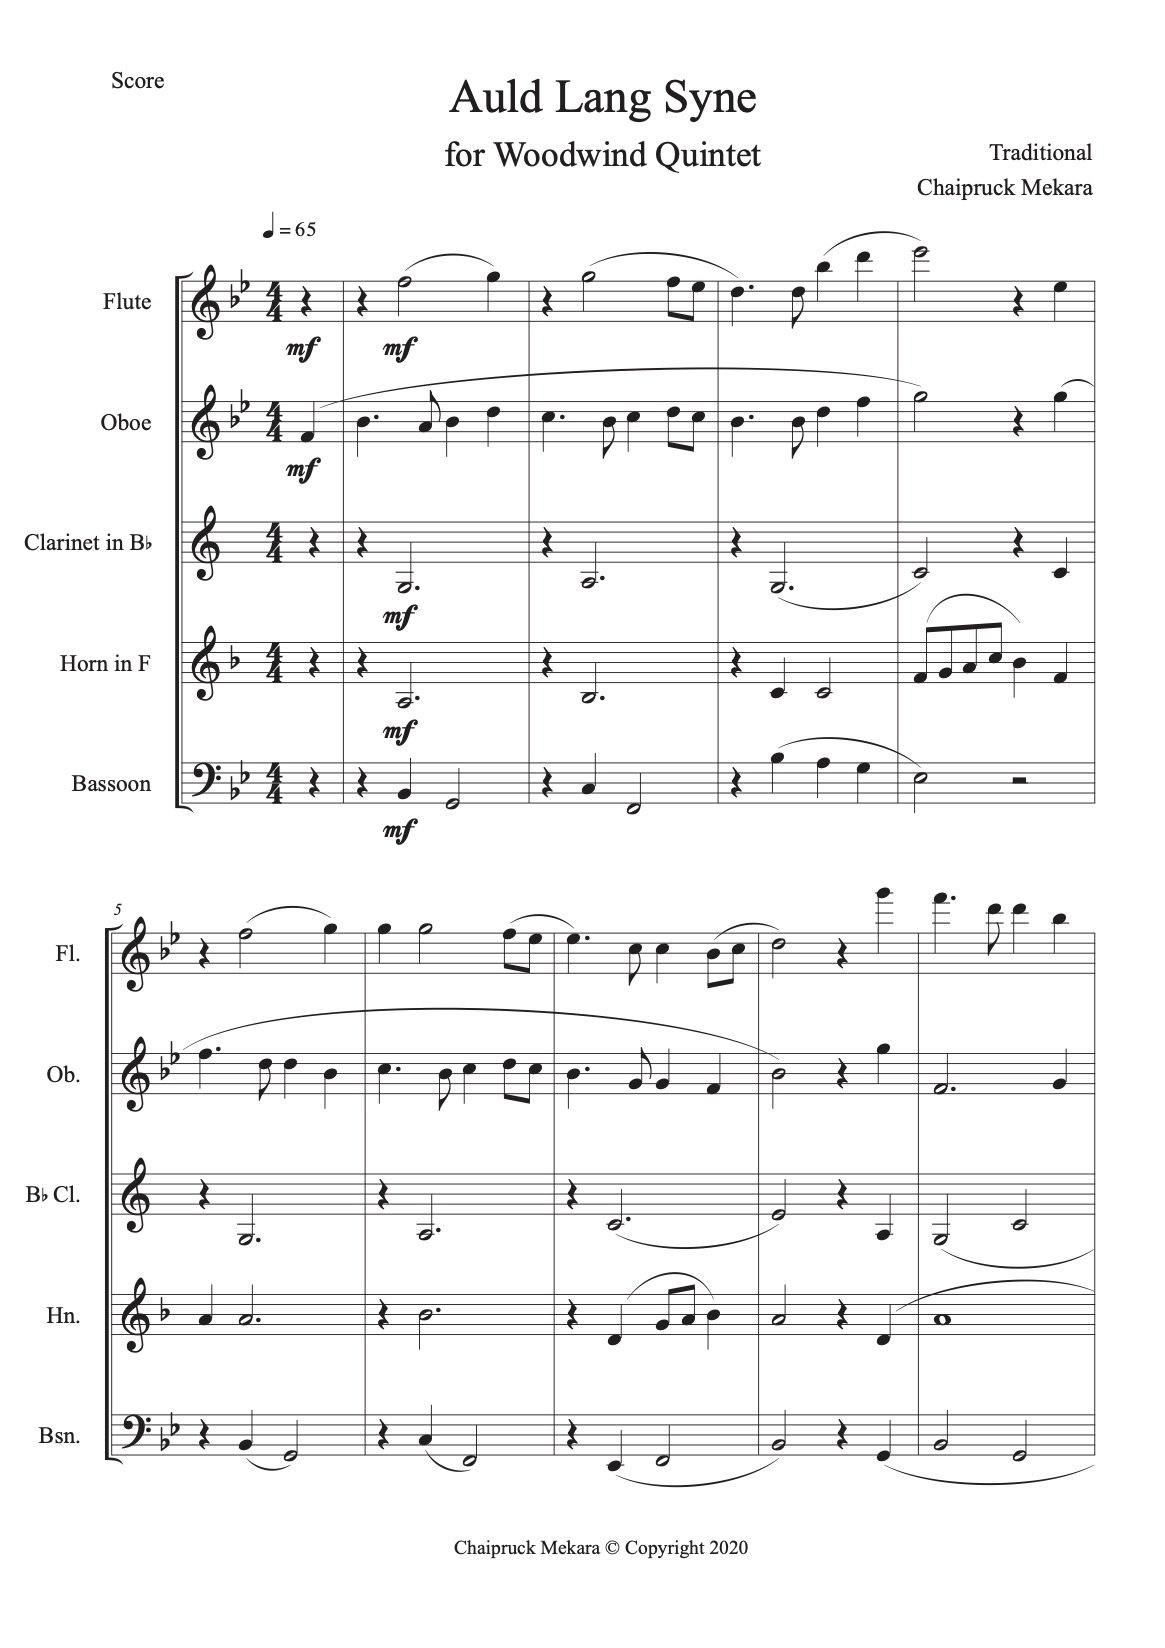 Auld Lang Syne Woodwind Quintet Arrangement (Score + Parts) - ChaipruckMekara